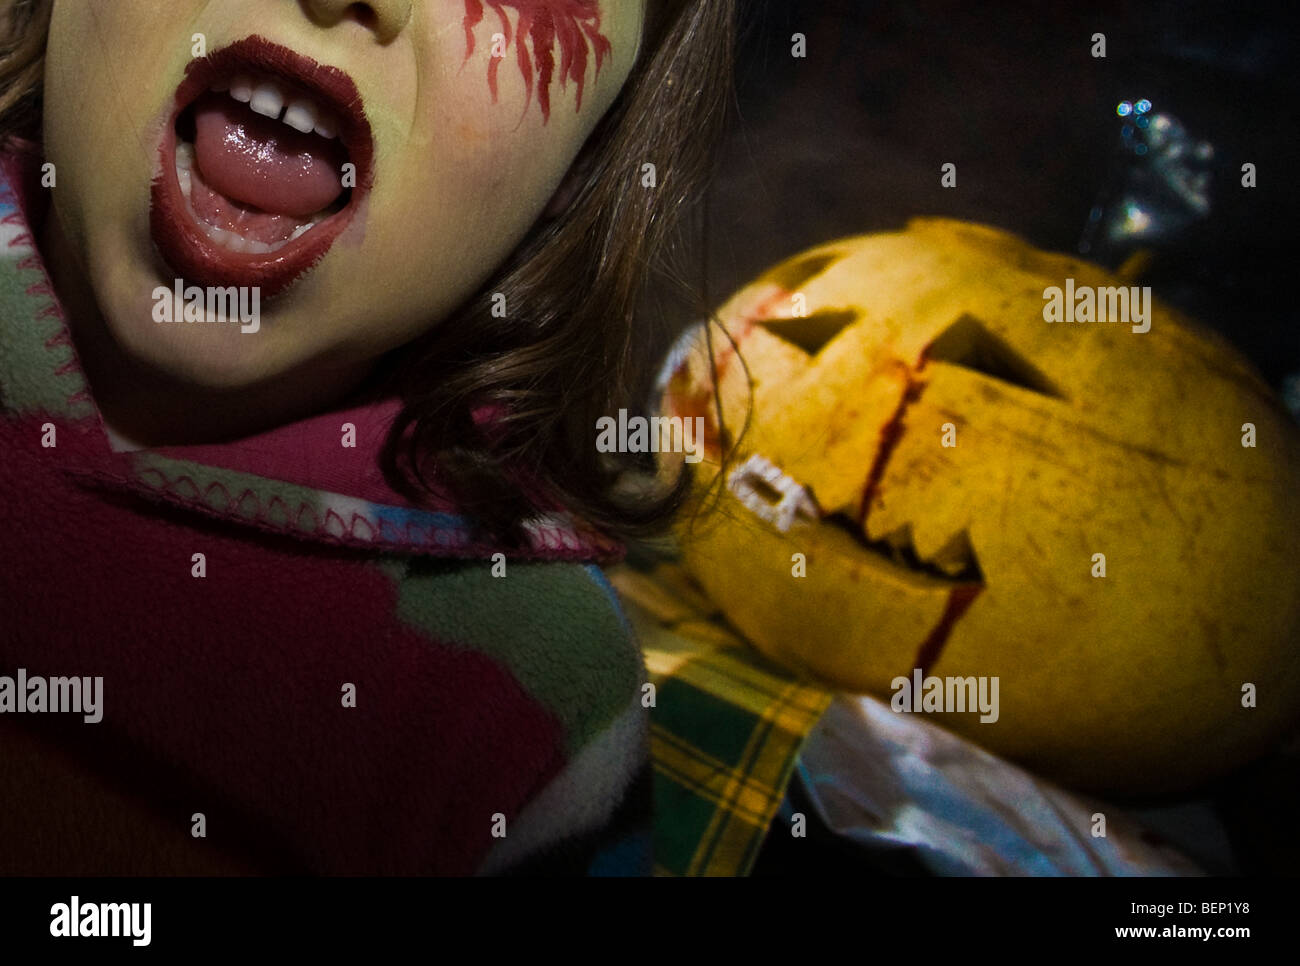 Scary Pumpkin Painting A Young Girl With Scary Face Paint And A Pumpkin Lantern At